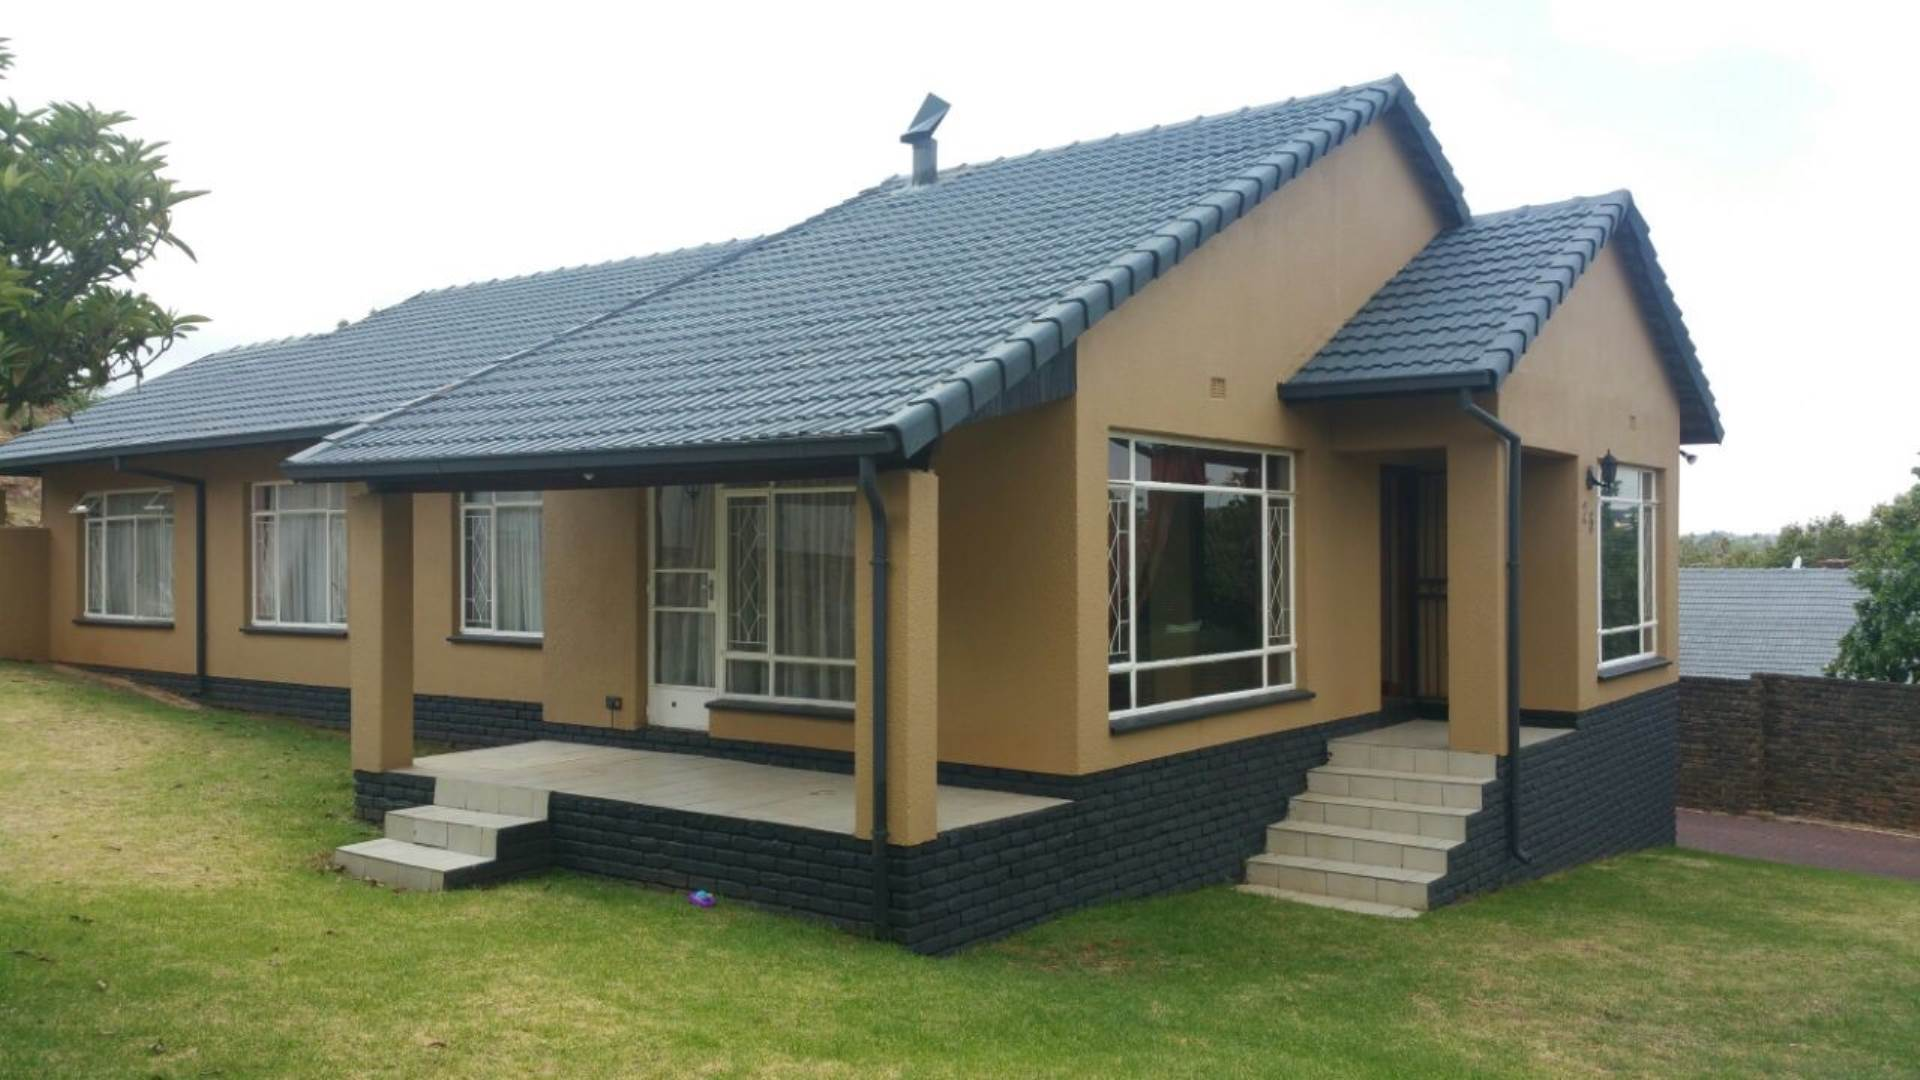 3 BedroomHouse For Sale In Kenmare